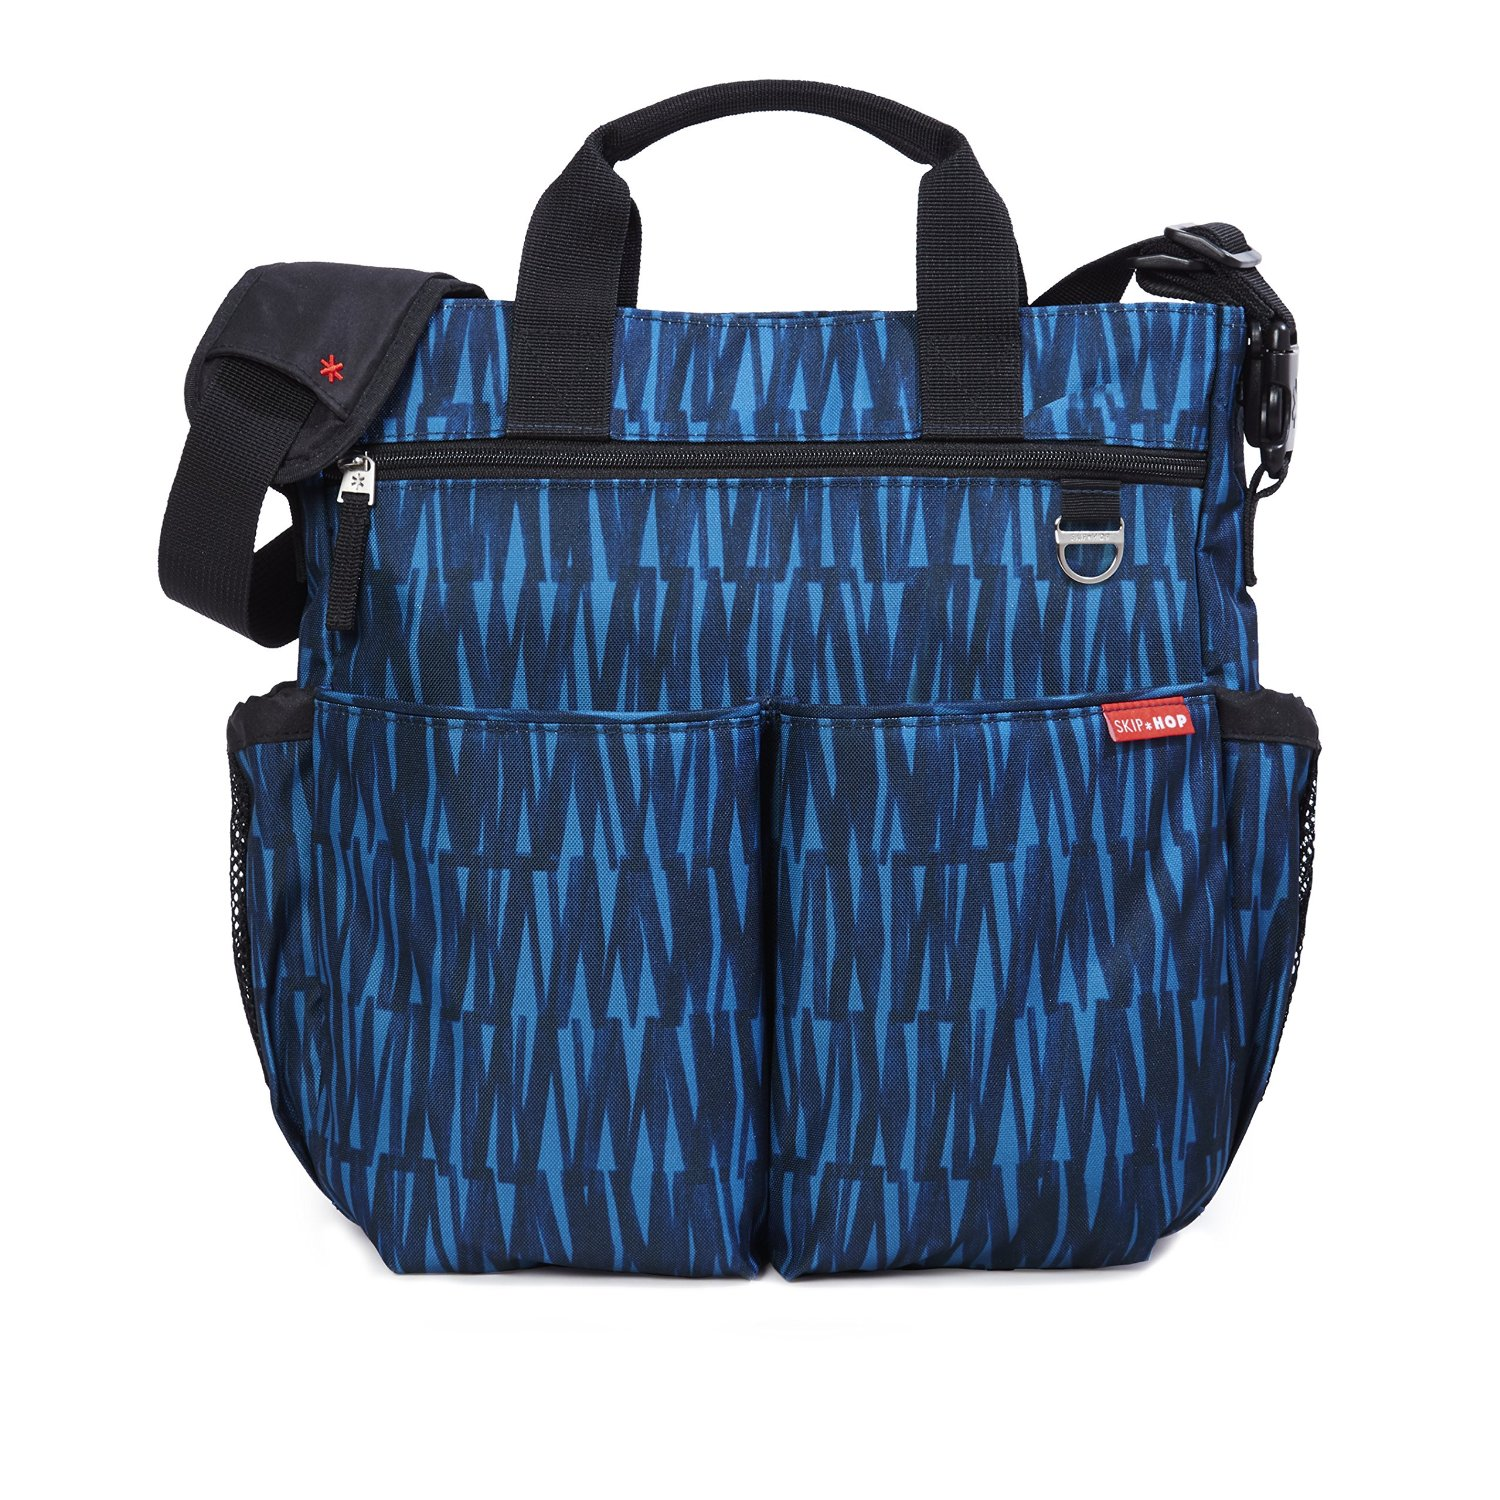 Skip Hop Duo Signature Carry All Travel Diaper Bag Tote with Multipockets, One Size, Blue Graffiti� by Skip Hop